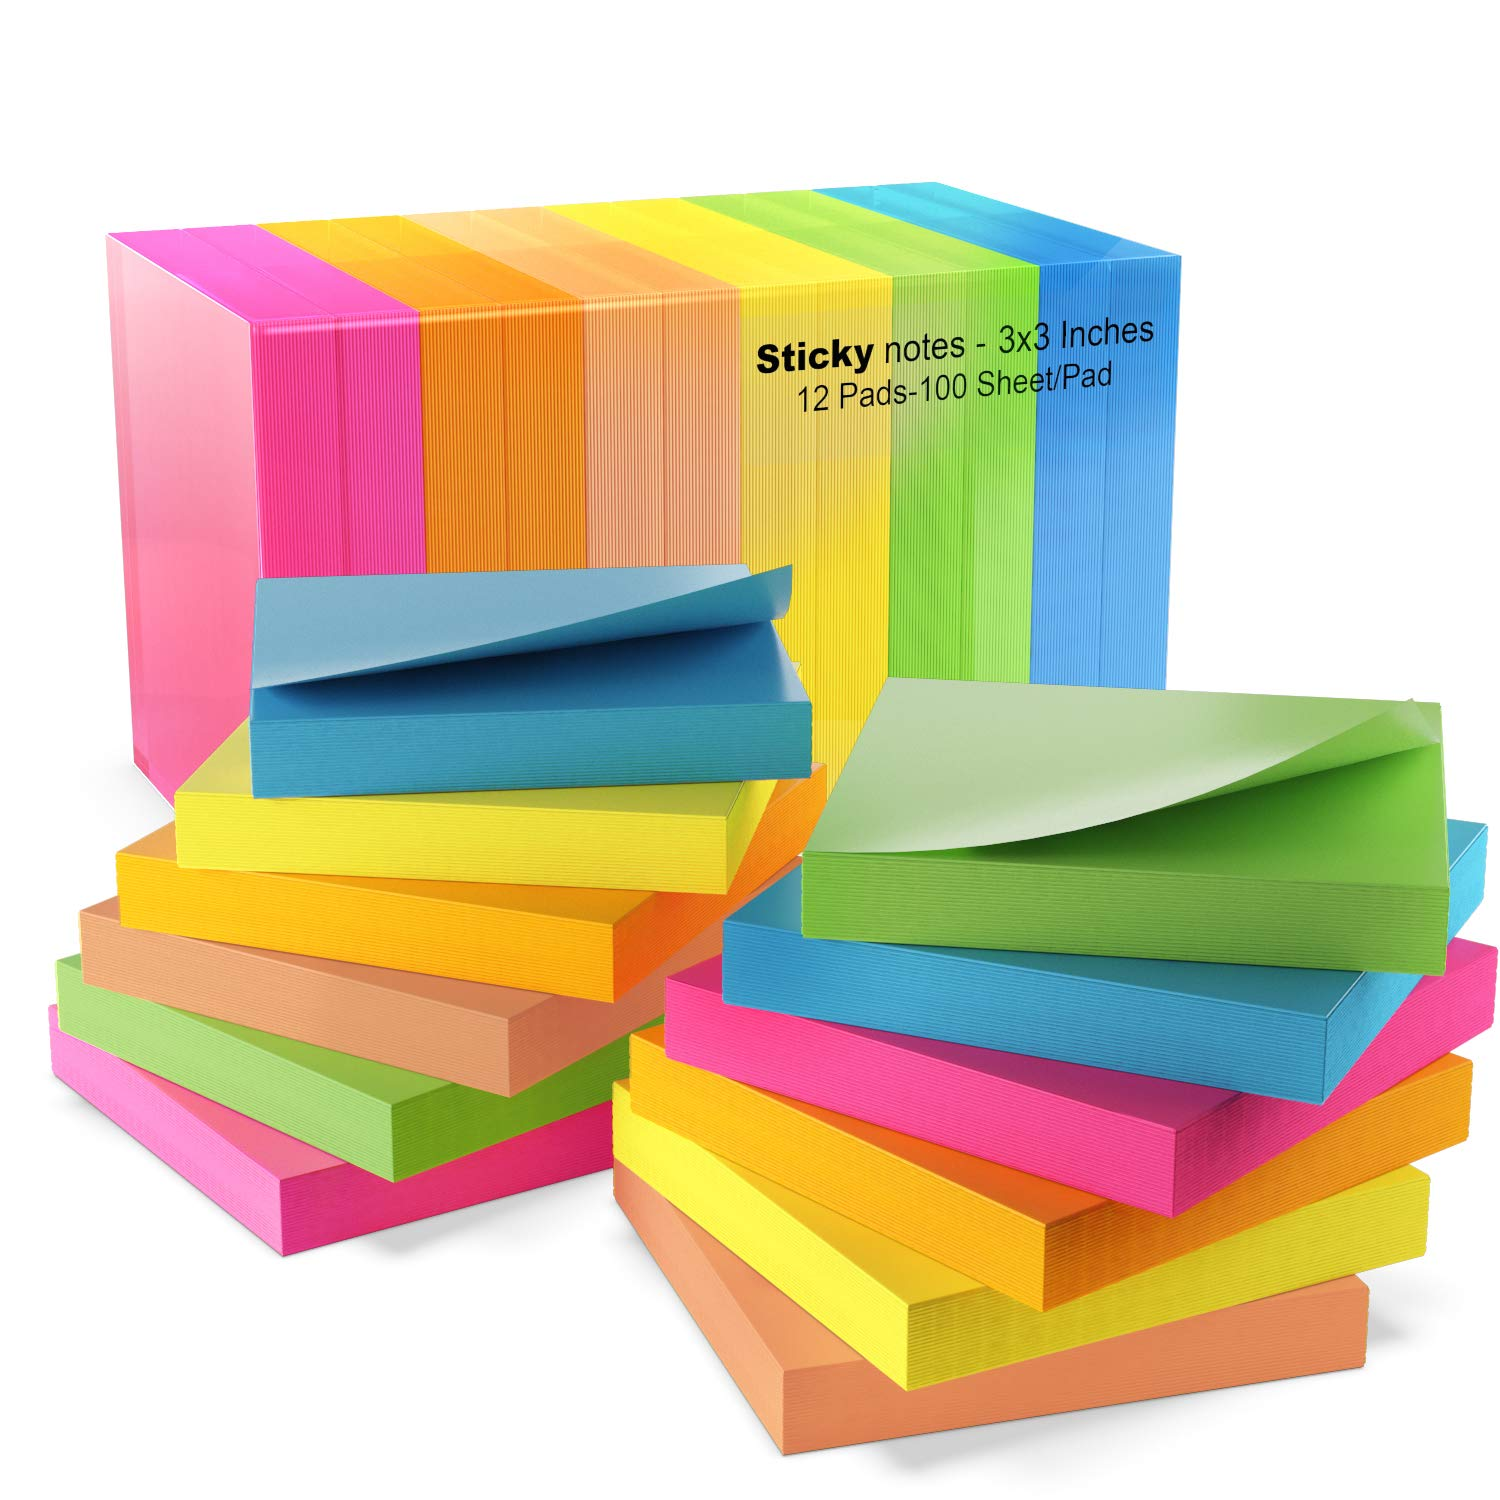 Sticky Notes 3x3, Bright Colorful Stickies, 12 Pads 1200 Sheets Total, Strong Sticking Memo Pads, 6 Colors (Yellow, Green, Blue, Orange, Pink, Rose) by Infiniko